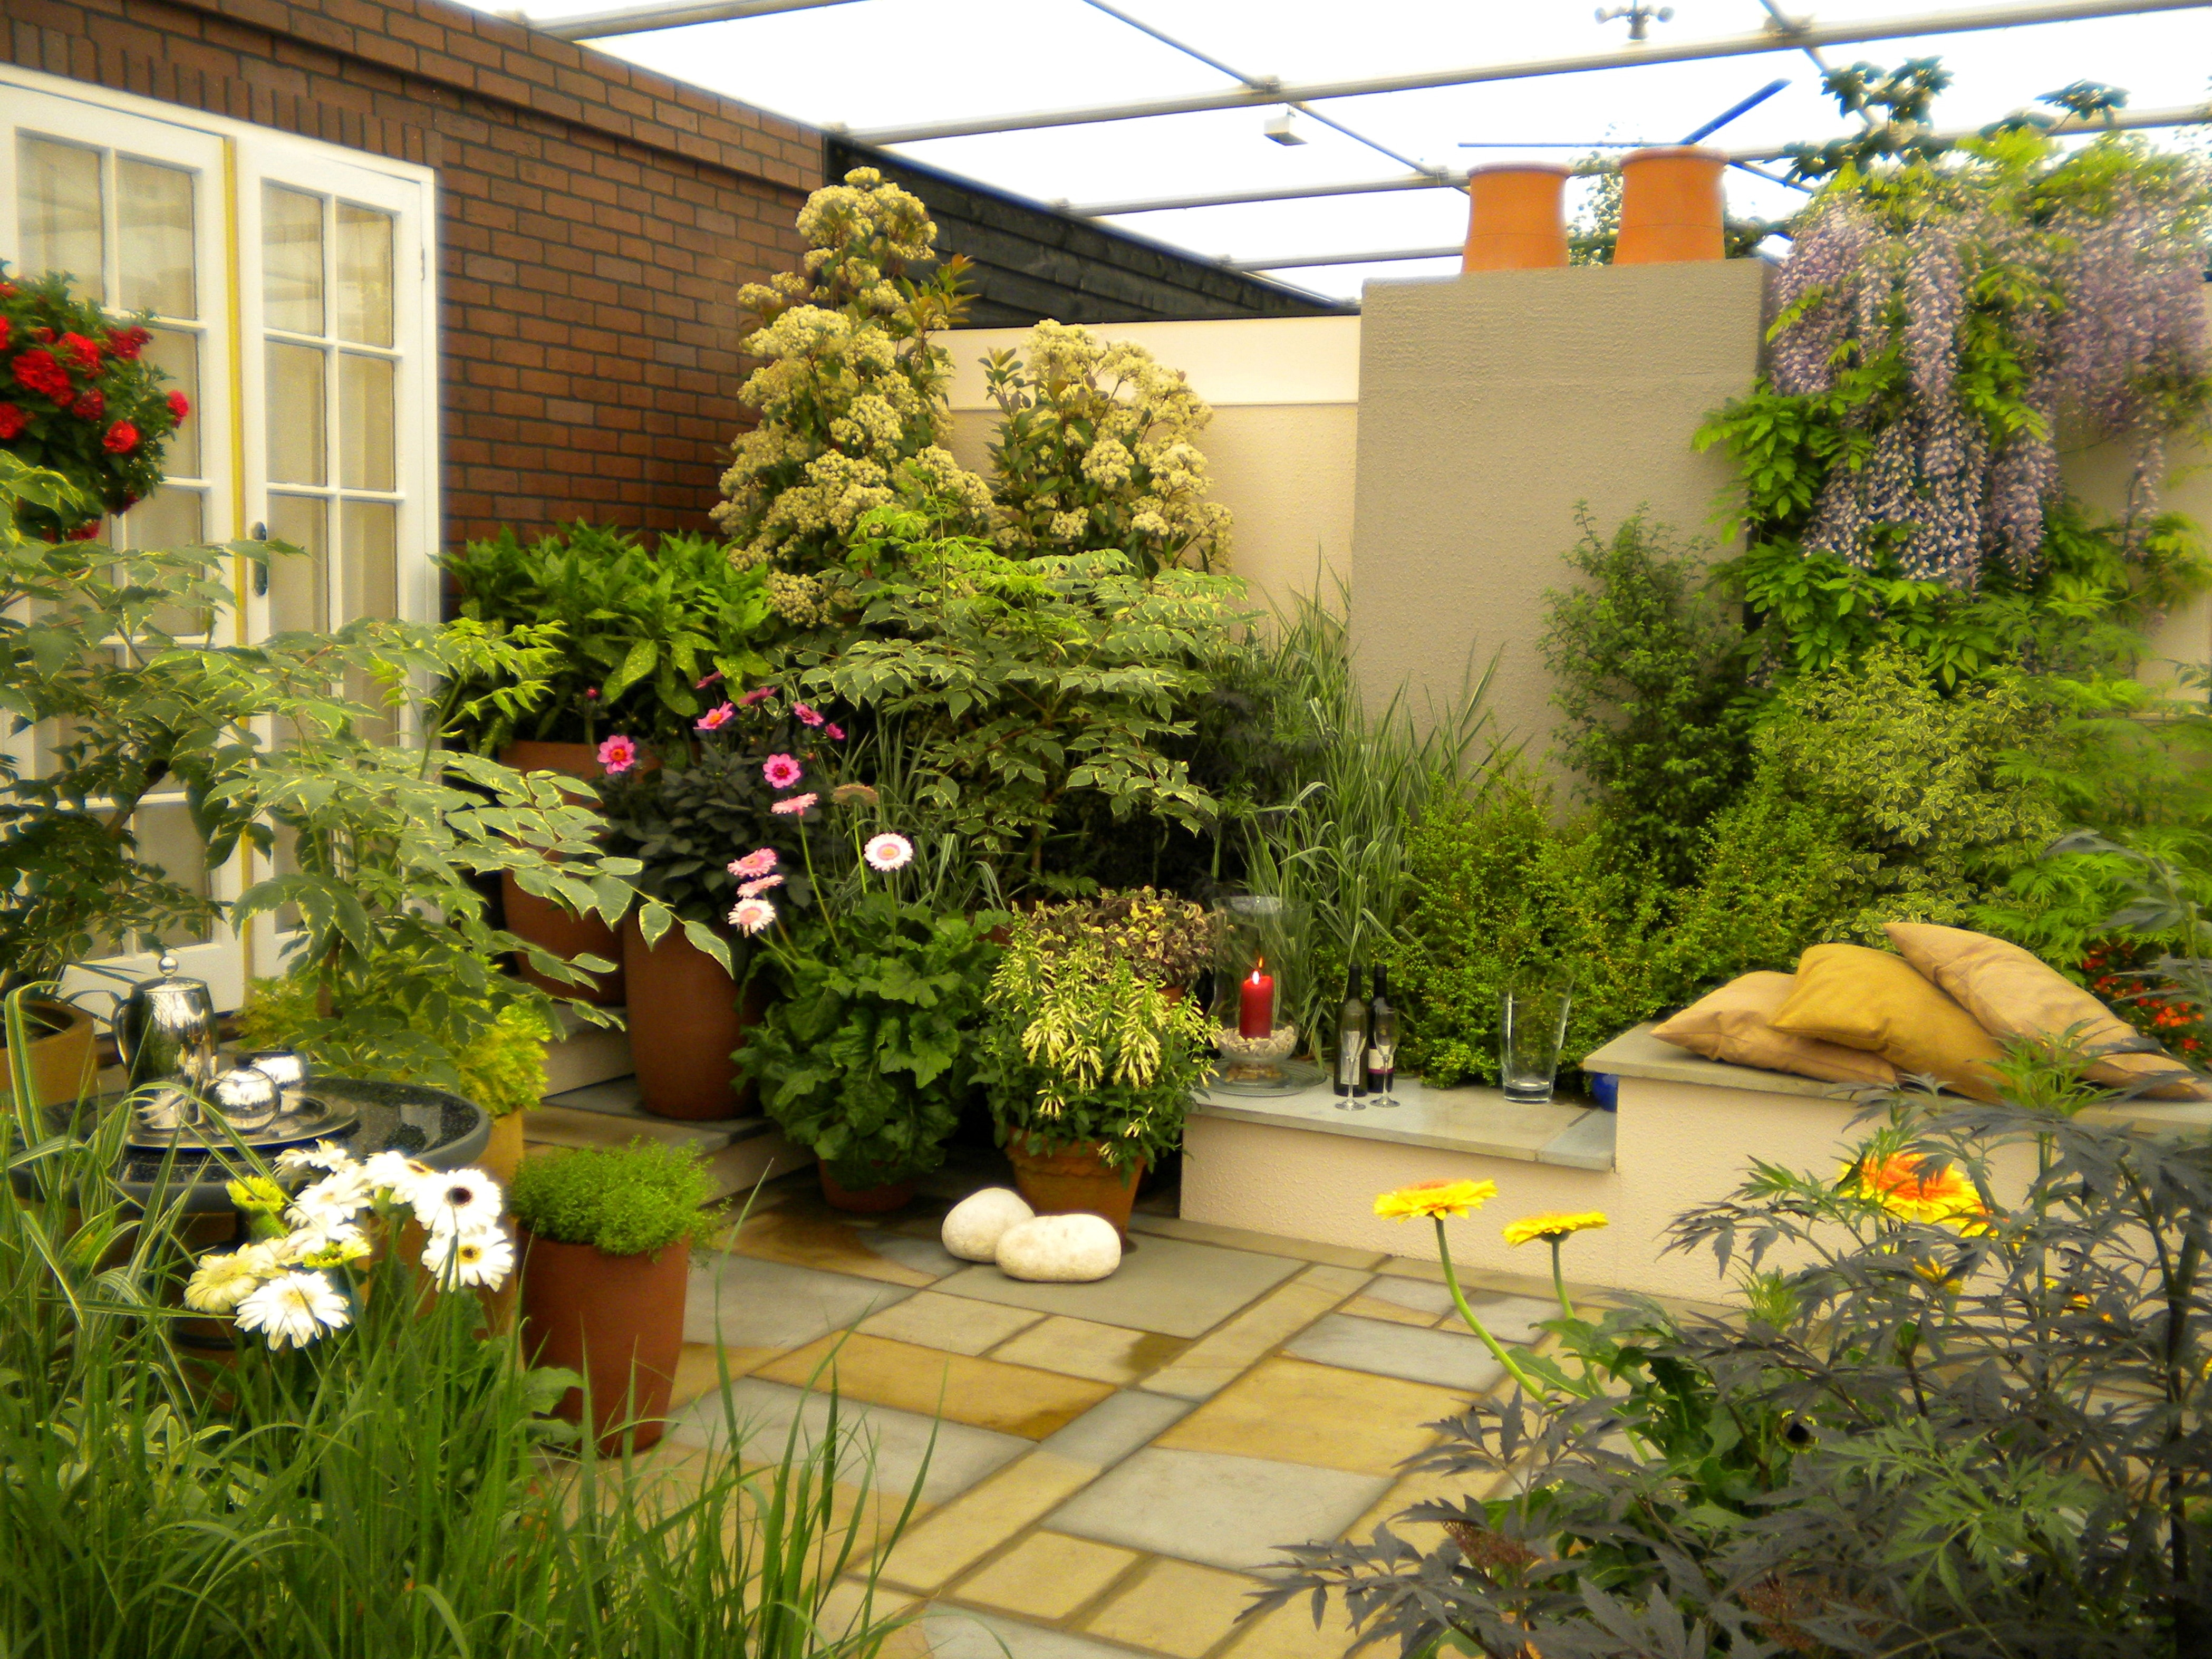 Selection Of Plants For Awsome Design Ideas Of Garden House Luxury Garden Ideas For Small Houses Landscaping Designs Architecturein